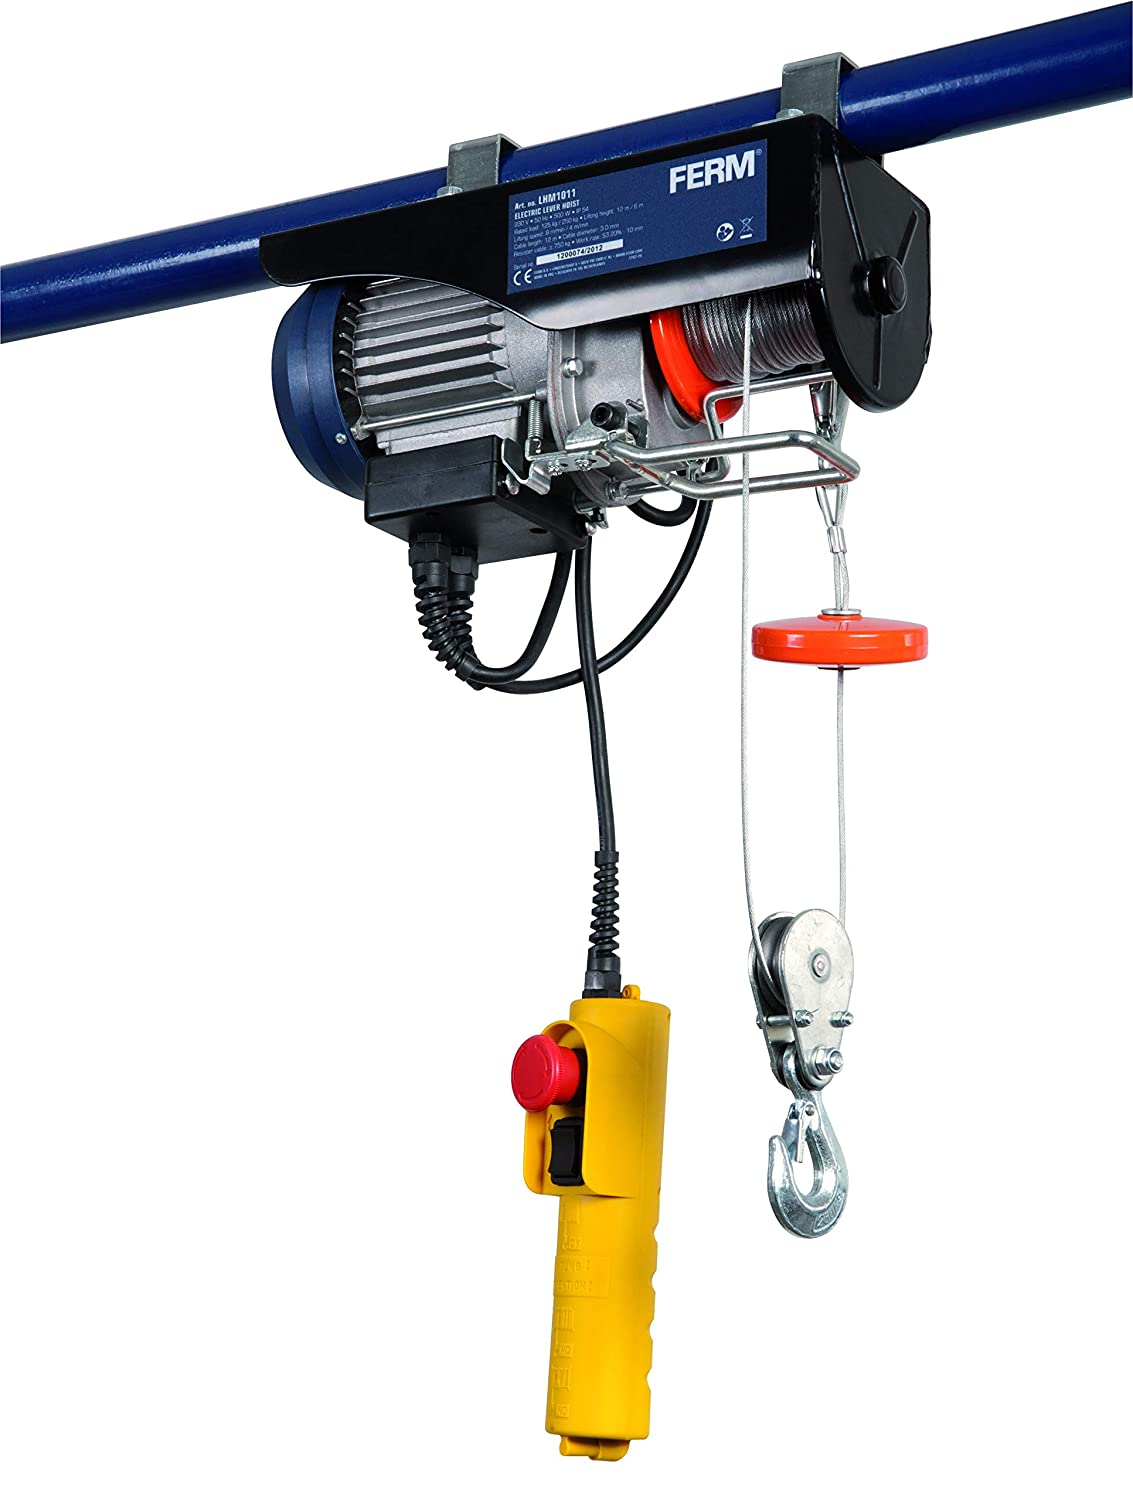 Silverline Electric Hoist 250kg 500W DIY Power Tools